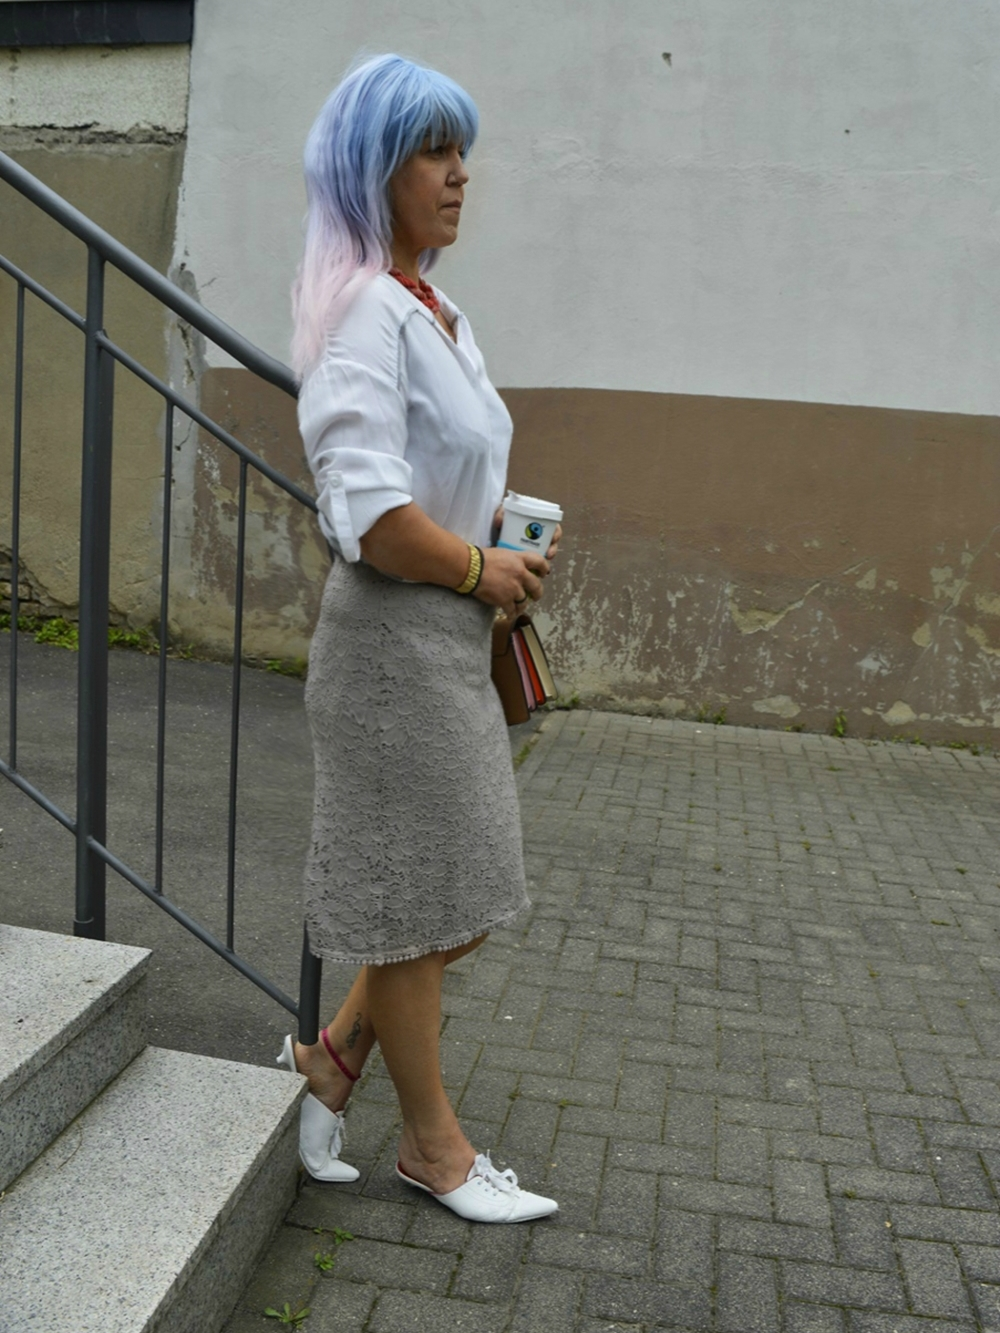 Annies Streetstyle Look with Lace Skirt, white blouse and leather mules - posted by Annie K, Fashion and Lifestyle Blogger, Founder, CEO and writer of ANNIES BEAUTY HOUSE